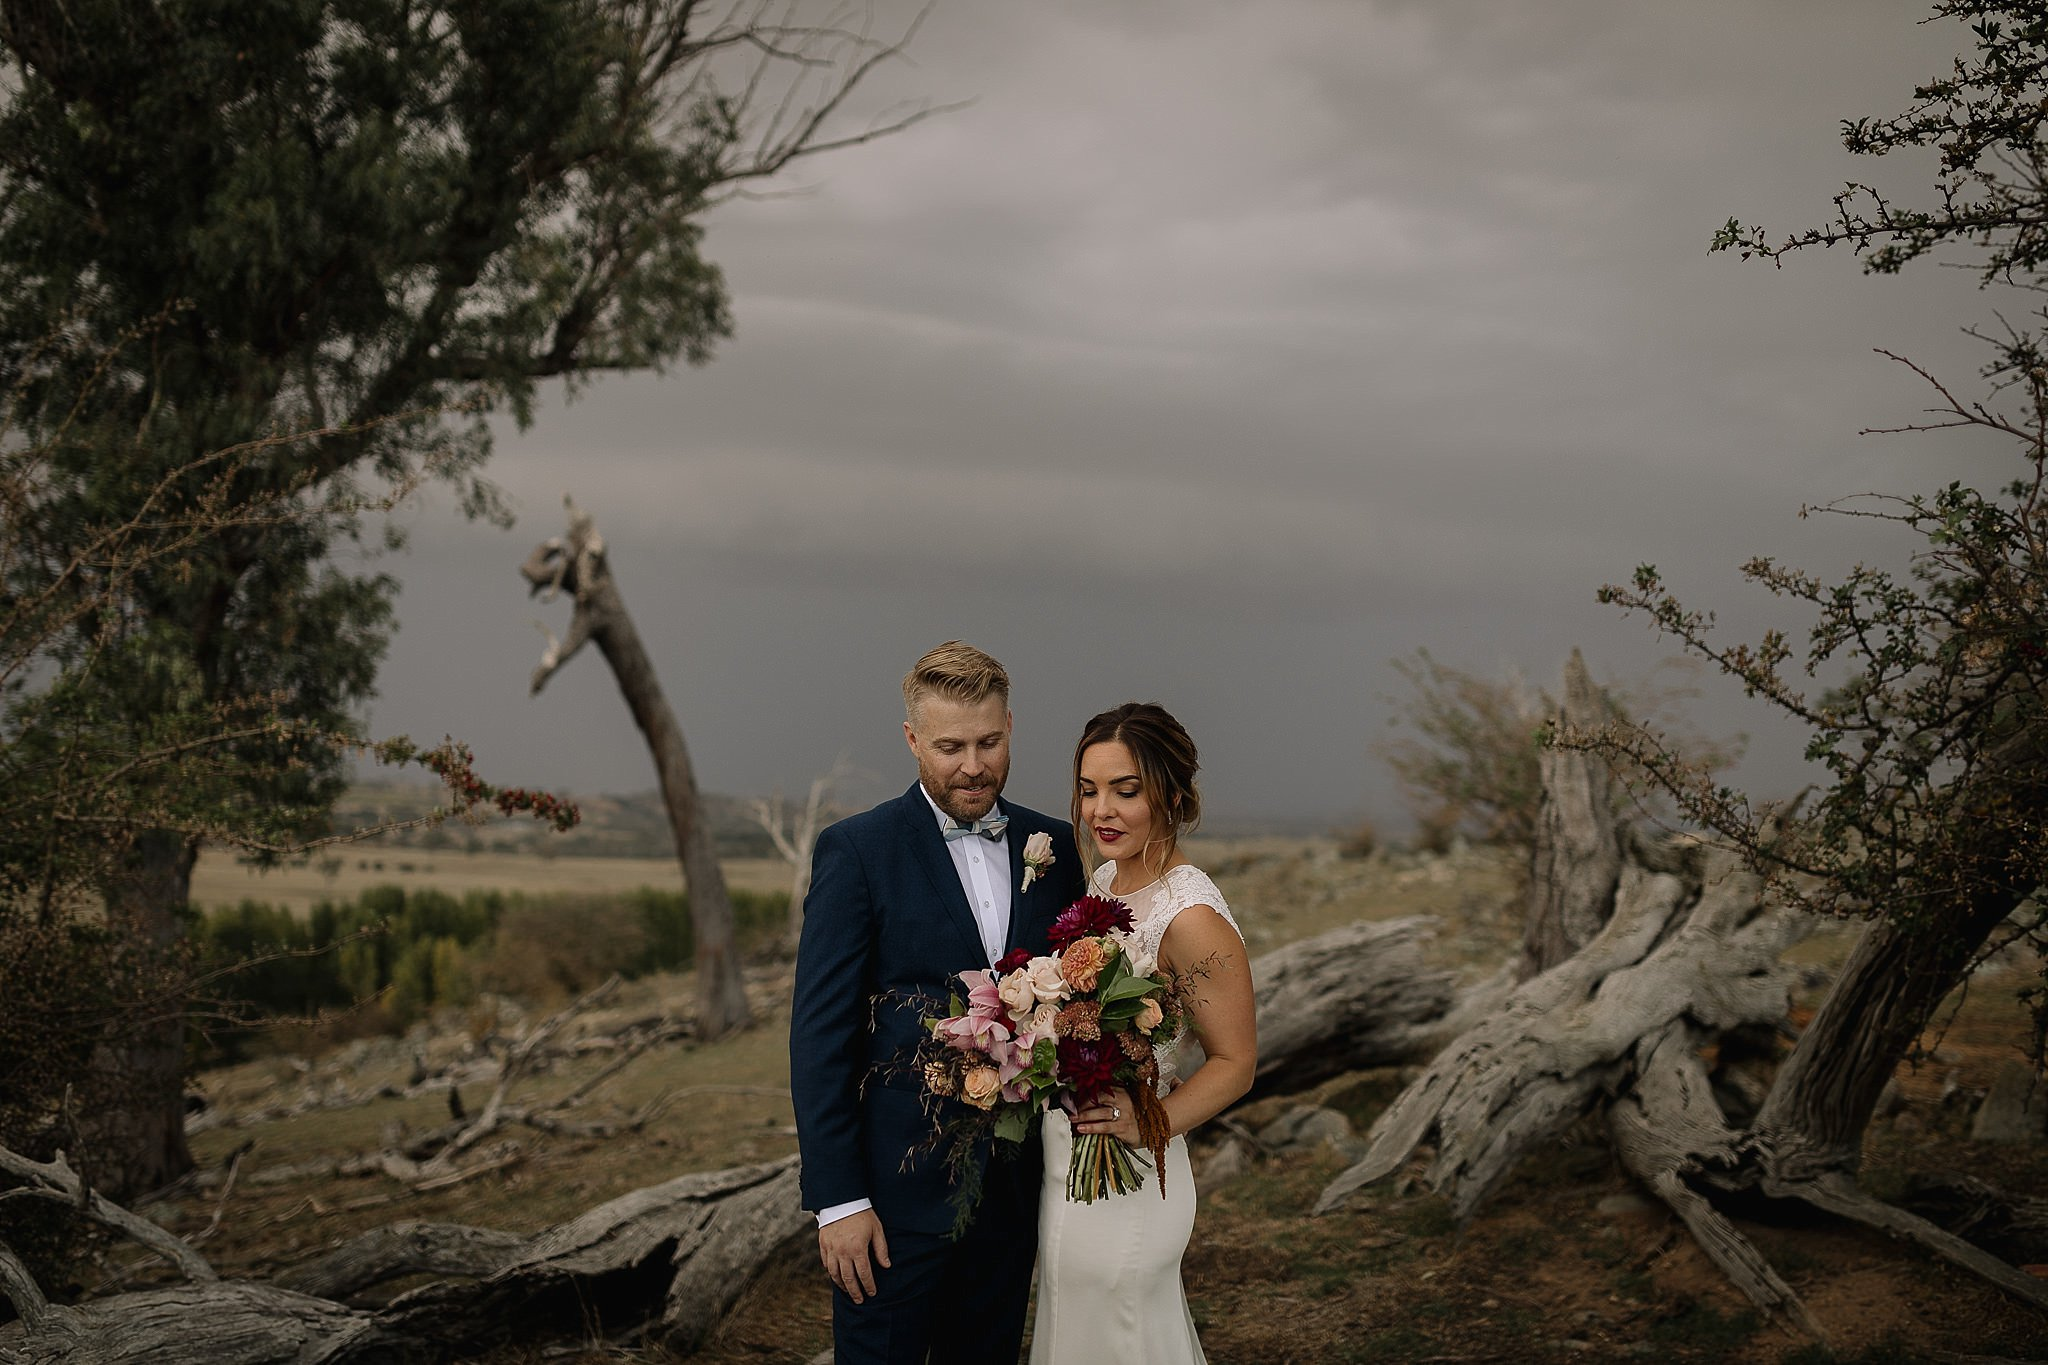 Canberra Portrait Photography,Canberra Photography,country wedding,Poachers pantry,Poachers Pantry wedding,Keepsakephoto by the Keeffes,Canberra Wedding Photographer,canberra wedding,Canberra Wedding Photography,canberra weddings,autumn wedding,Barn Wedding,lilygrace flowers,